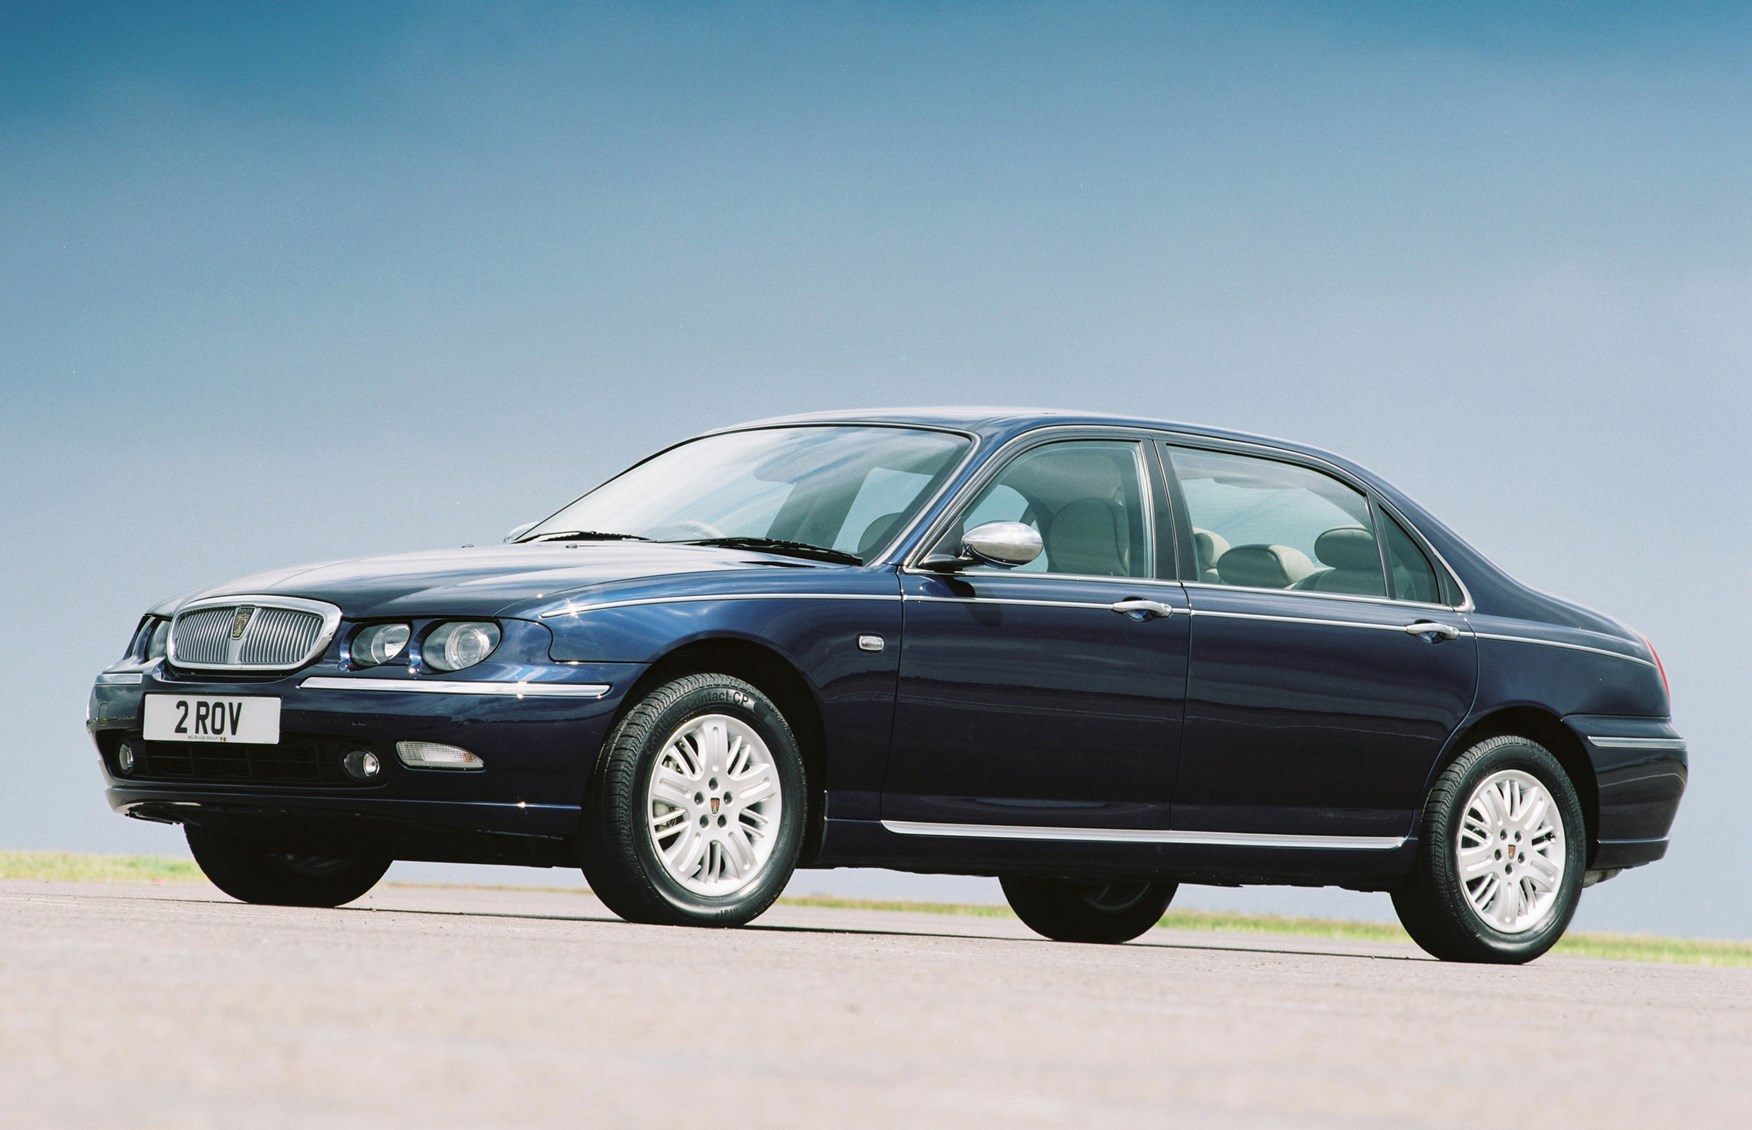 rover 75 saloon review 1999 2004 parkers. Black Bedroom Furniture Sets. Home Design Ideas